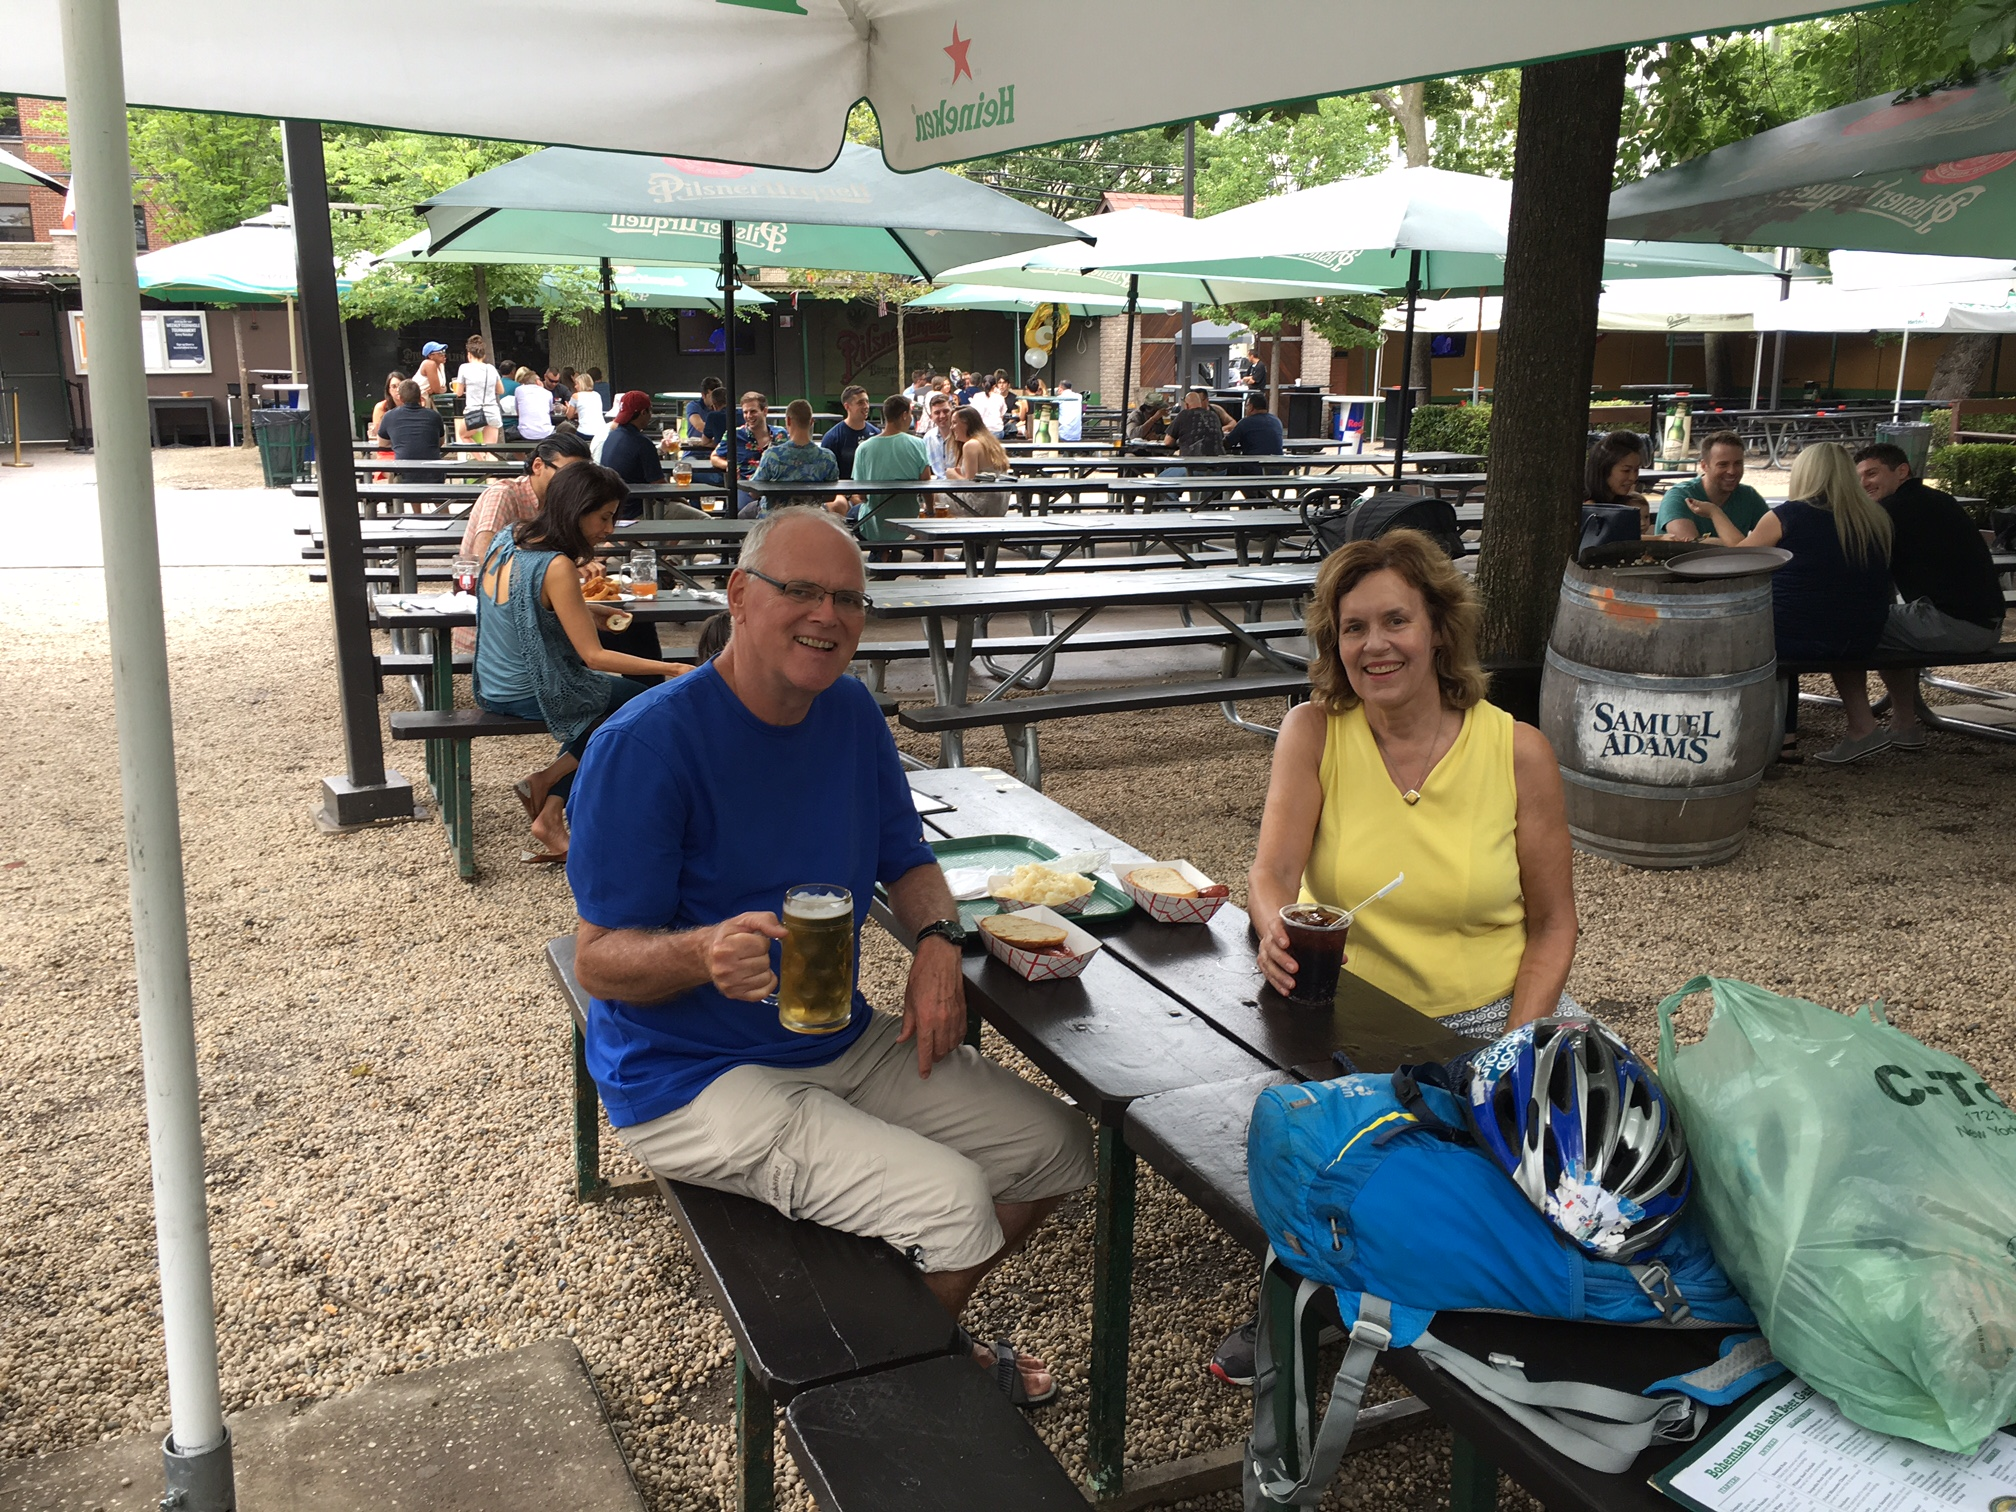 Bernd & Lorraine having lunch at the Bohemian Hall beer garden, Queens, NYC  8-5-17